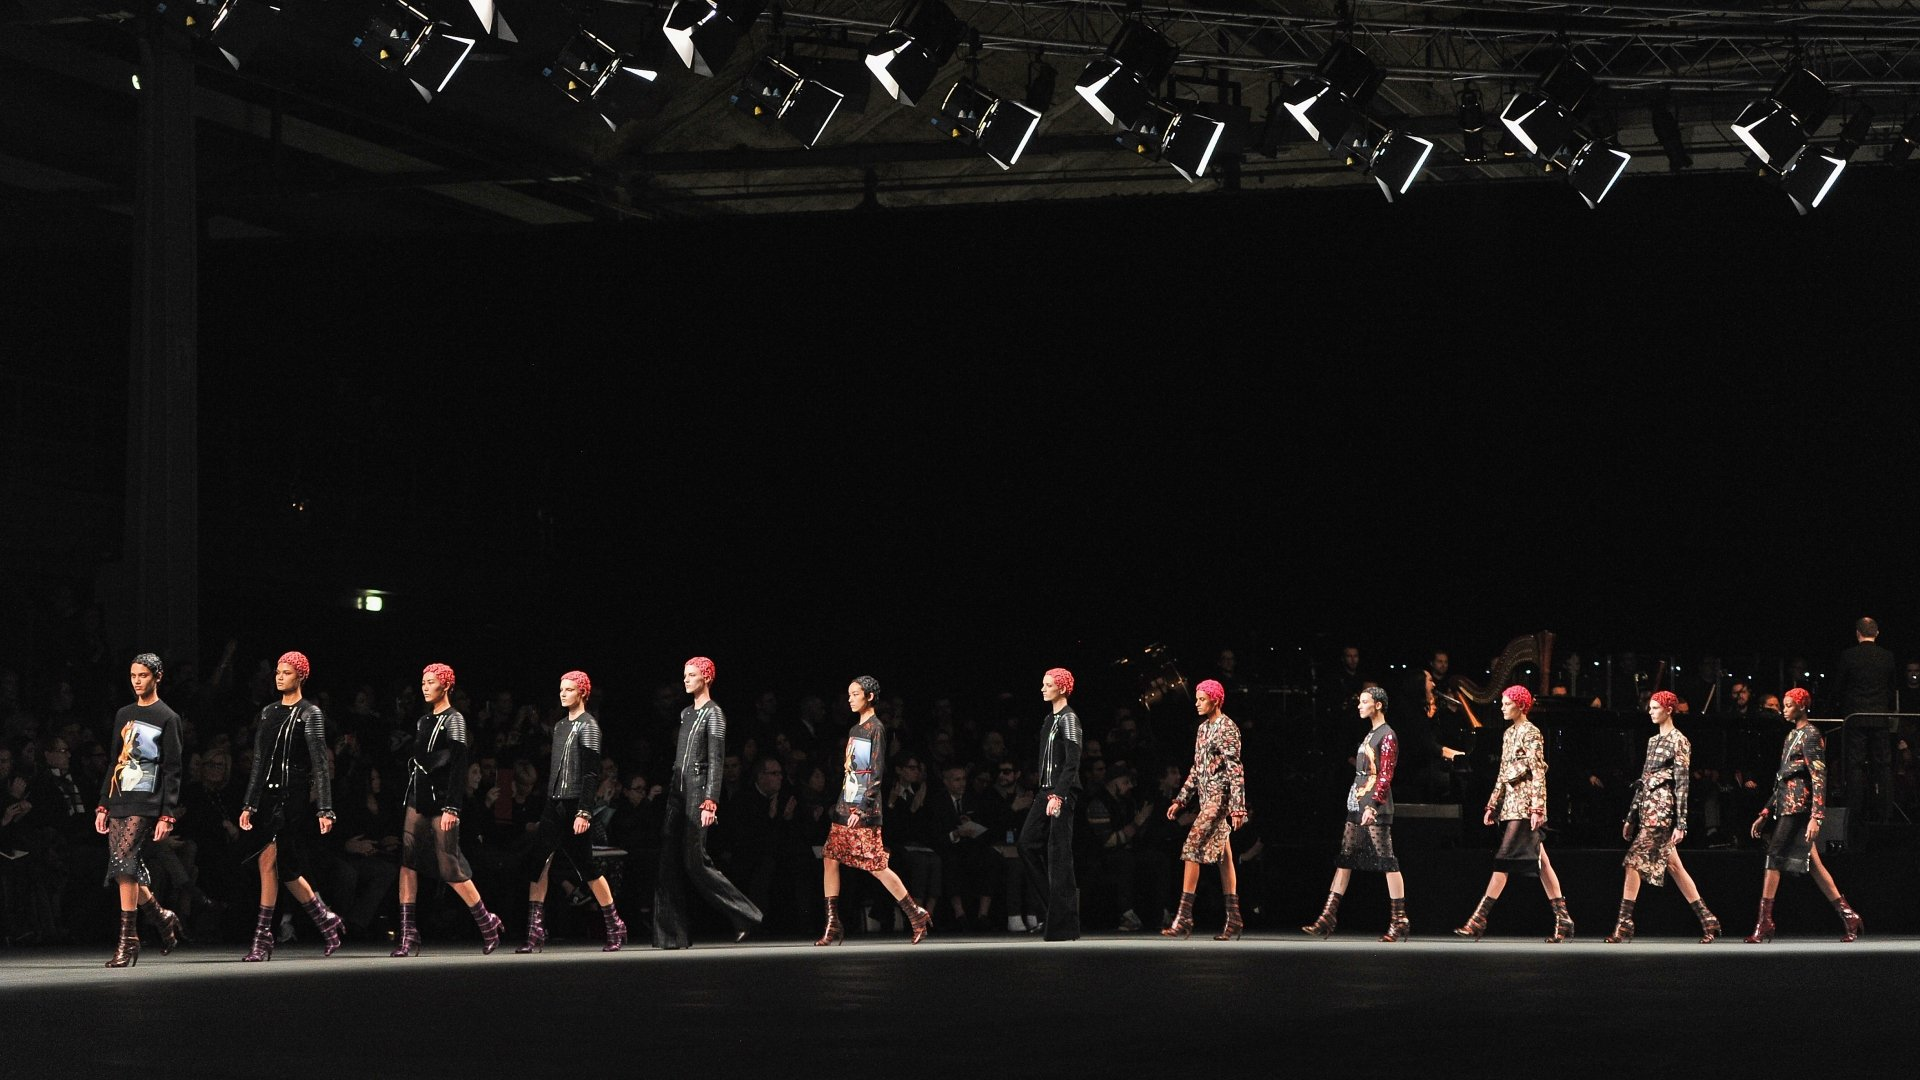 download Givenchy fashion show wallpapers and images 1920x1080